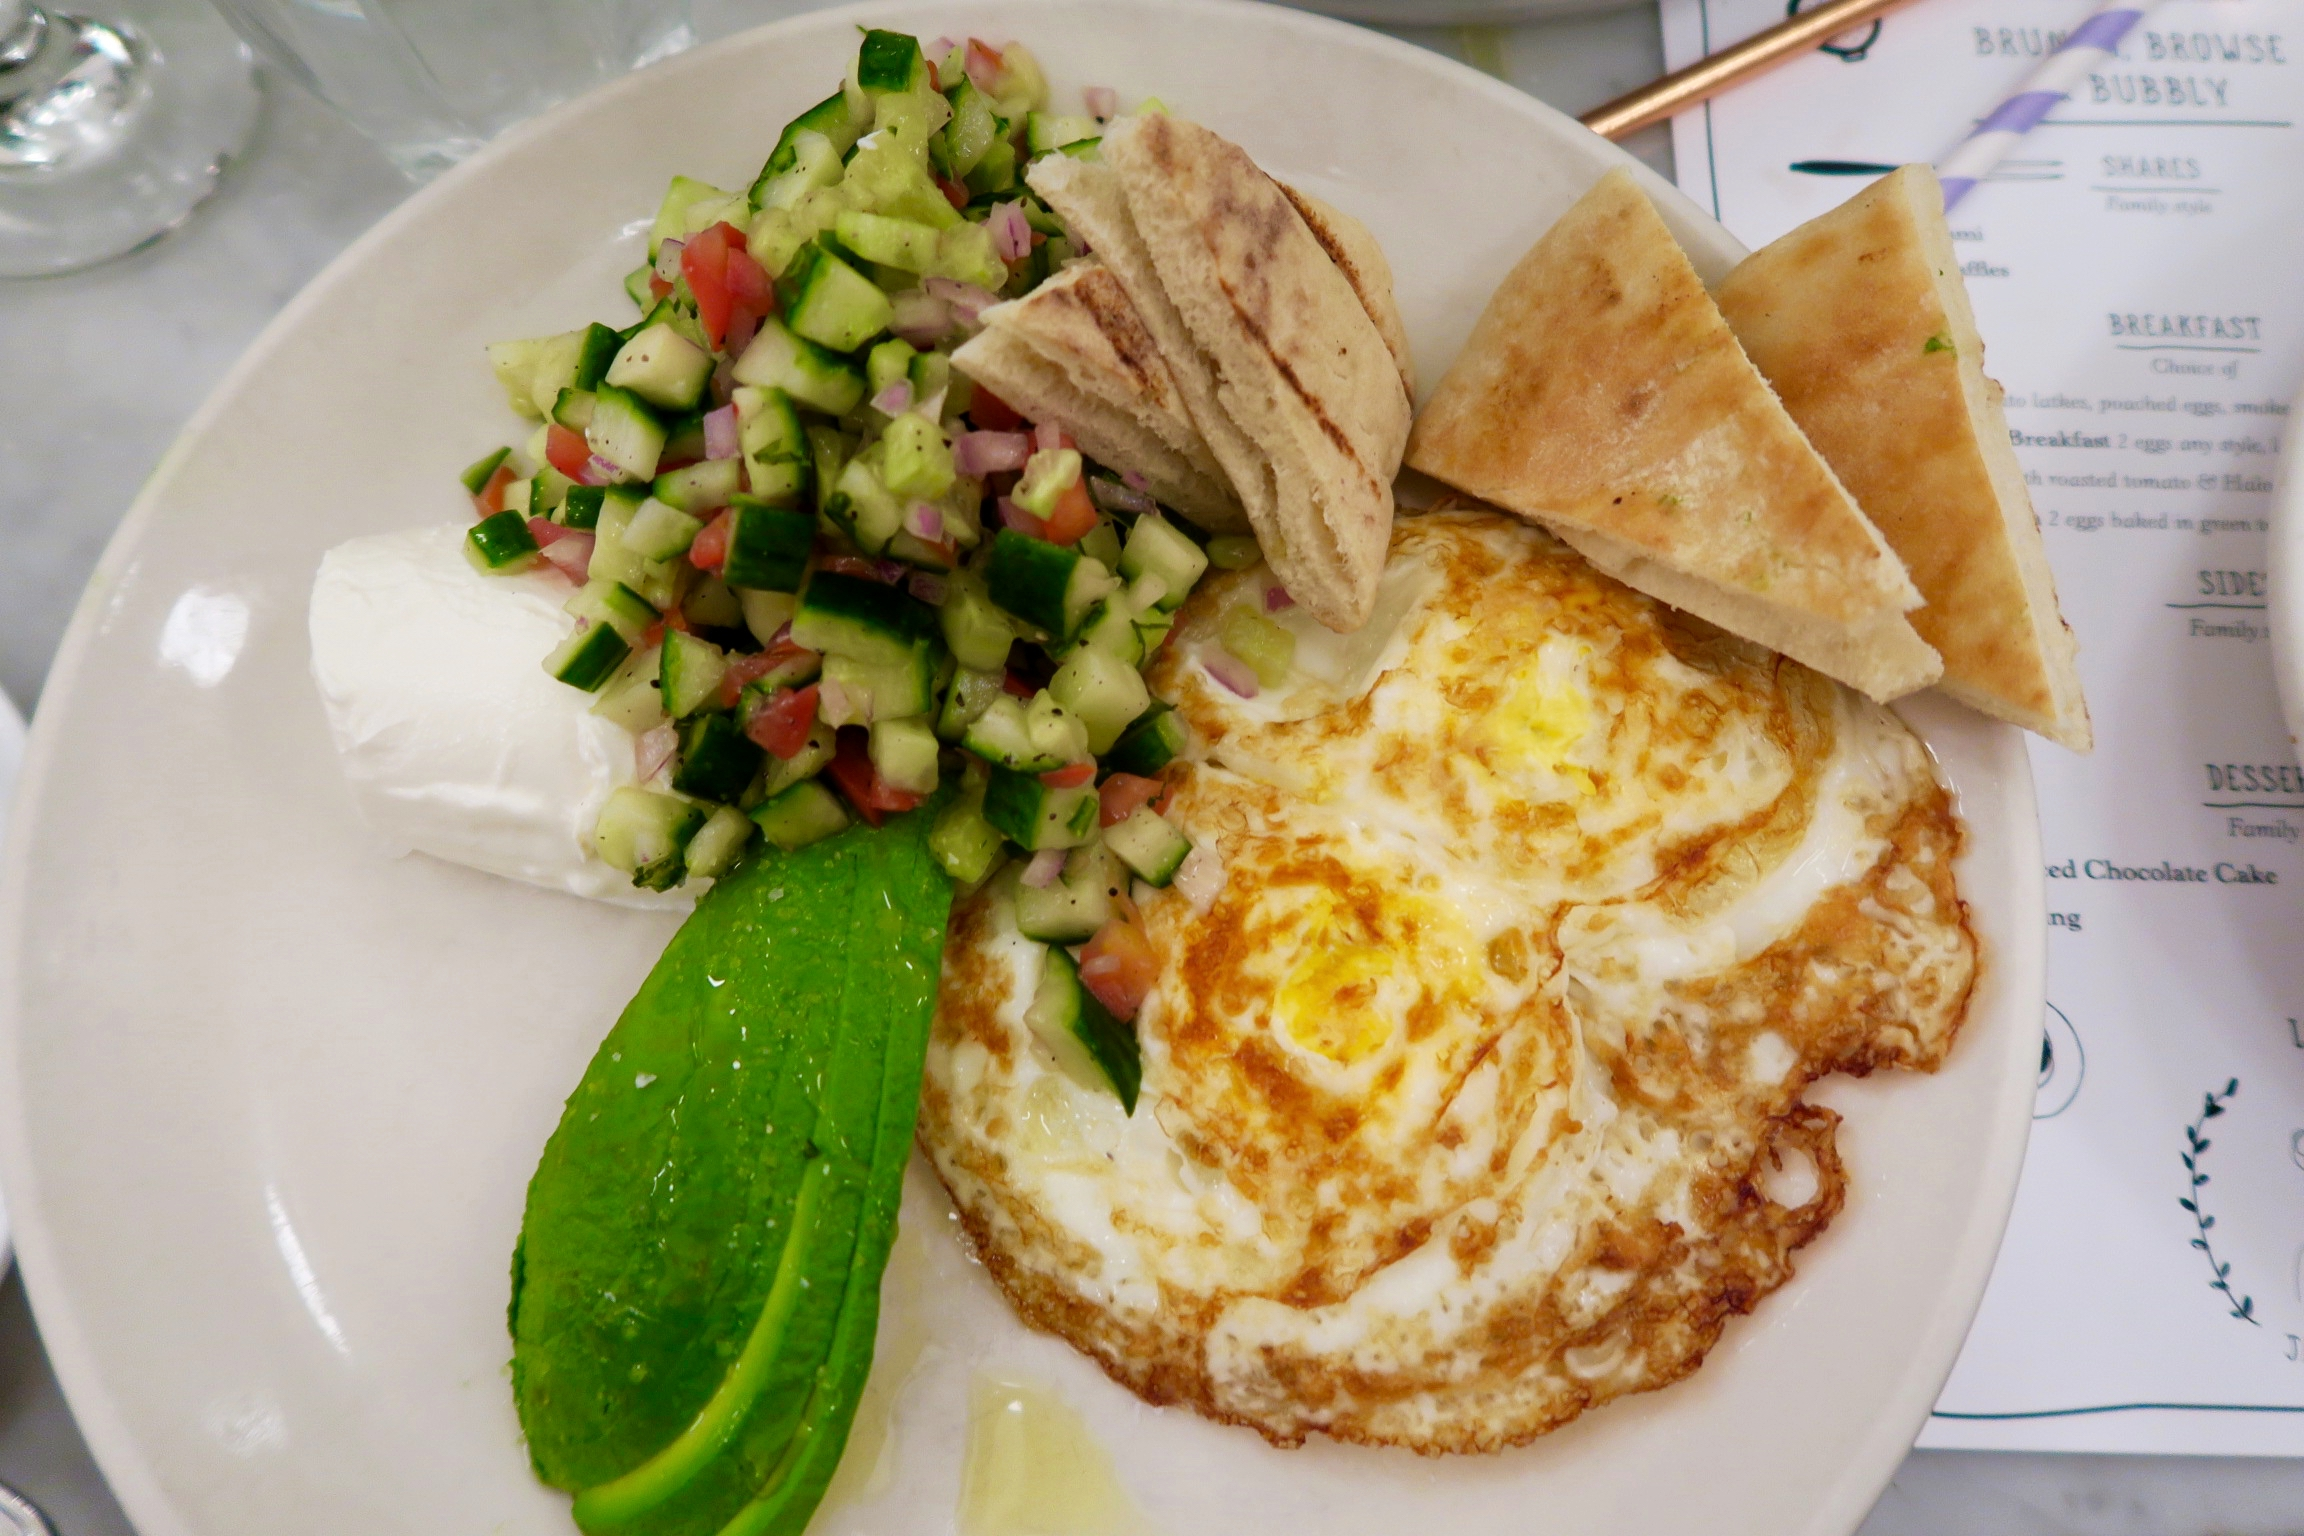 Mediterranean Breakfast  Two eggs any style, chopped salad, labne, avocado, and pita bread